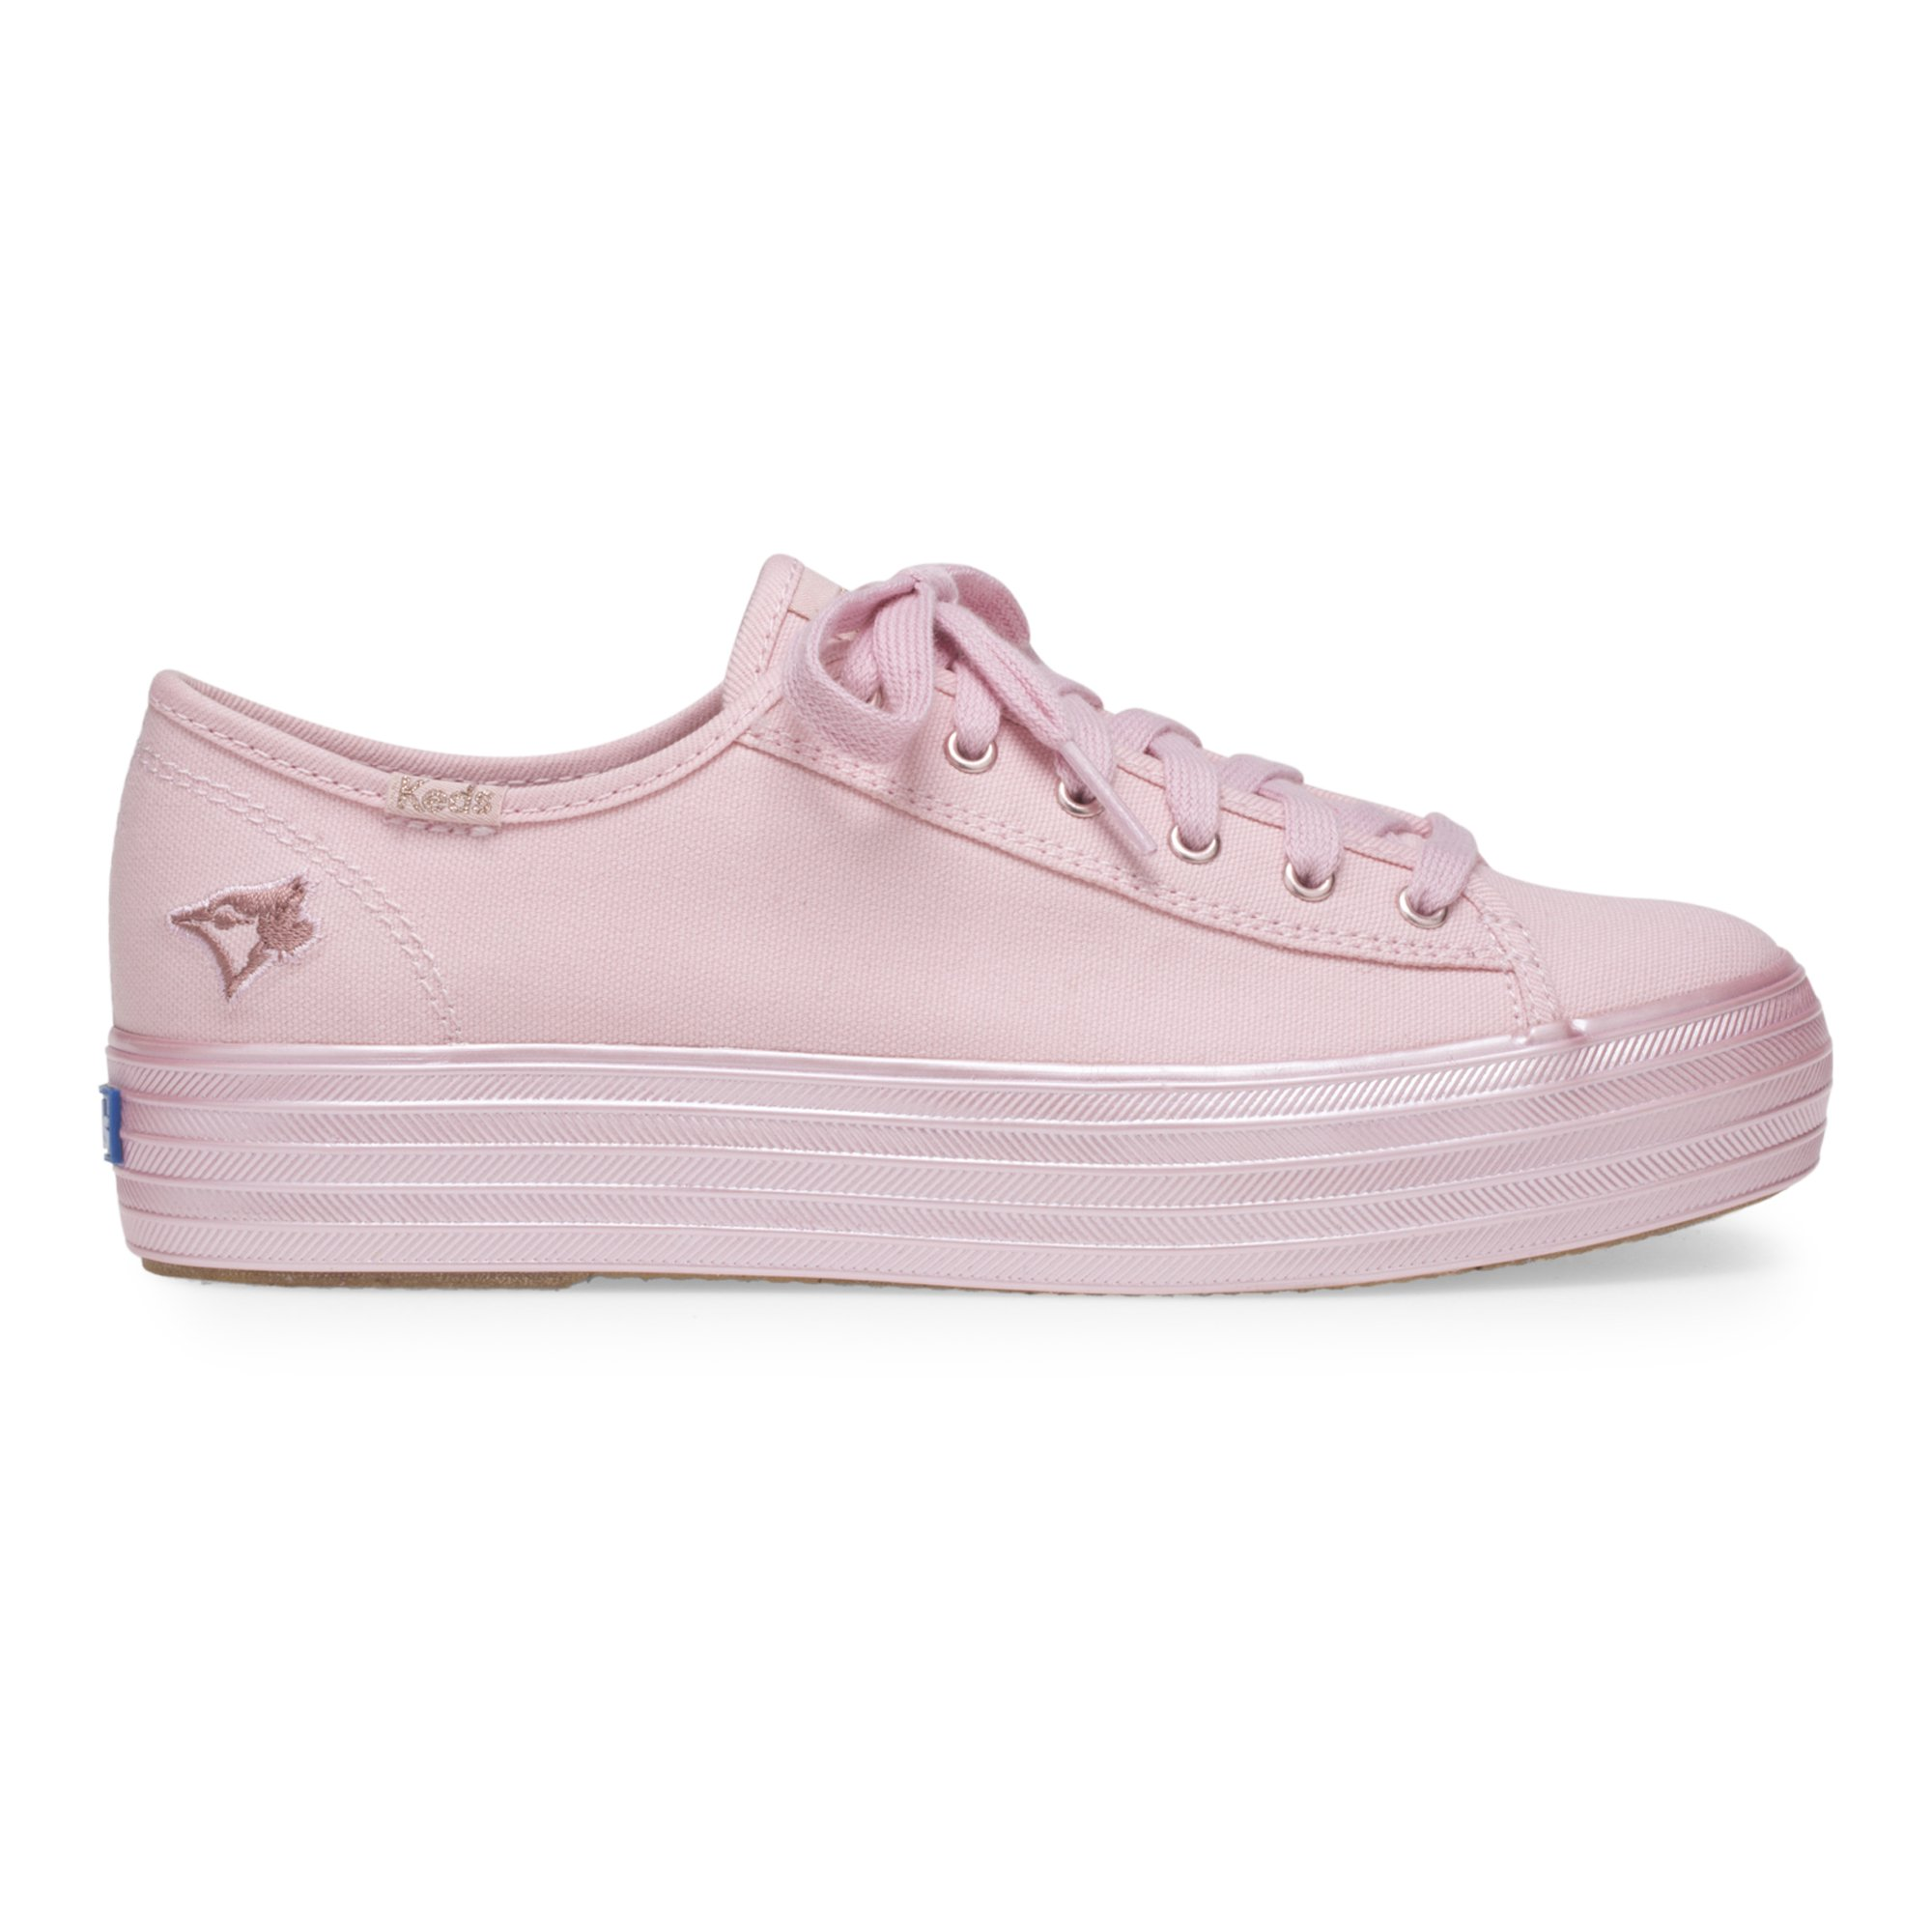 4abc04ab11abc Keds Women s Triple Kick Mlb Sneakers in Pink